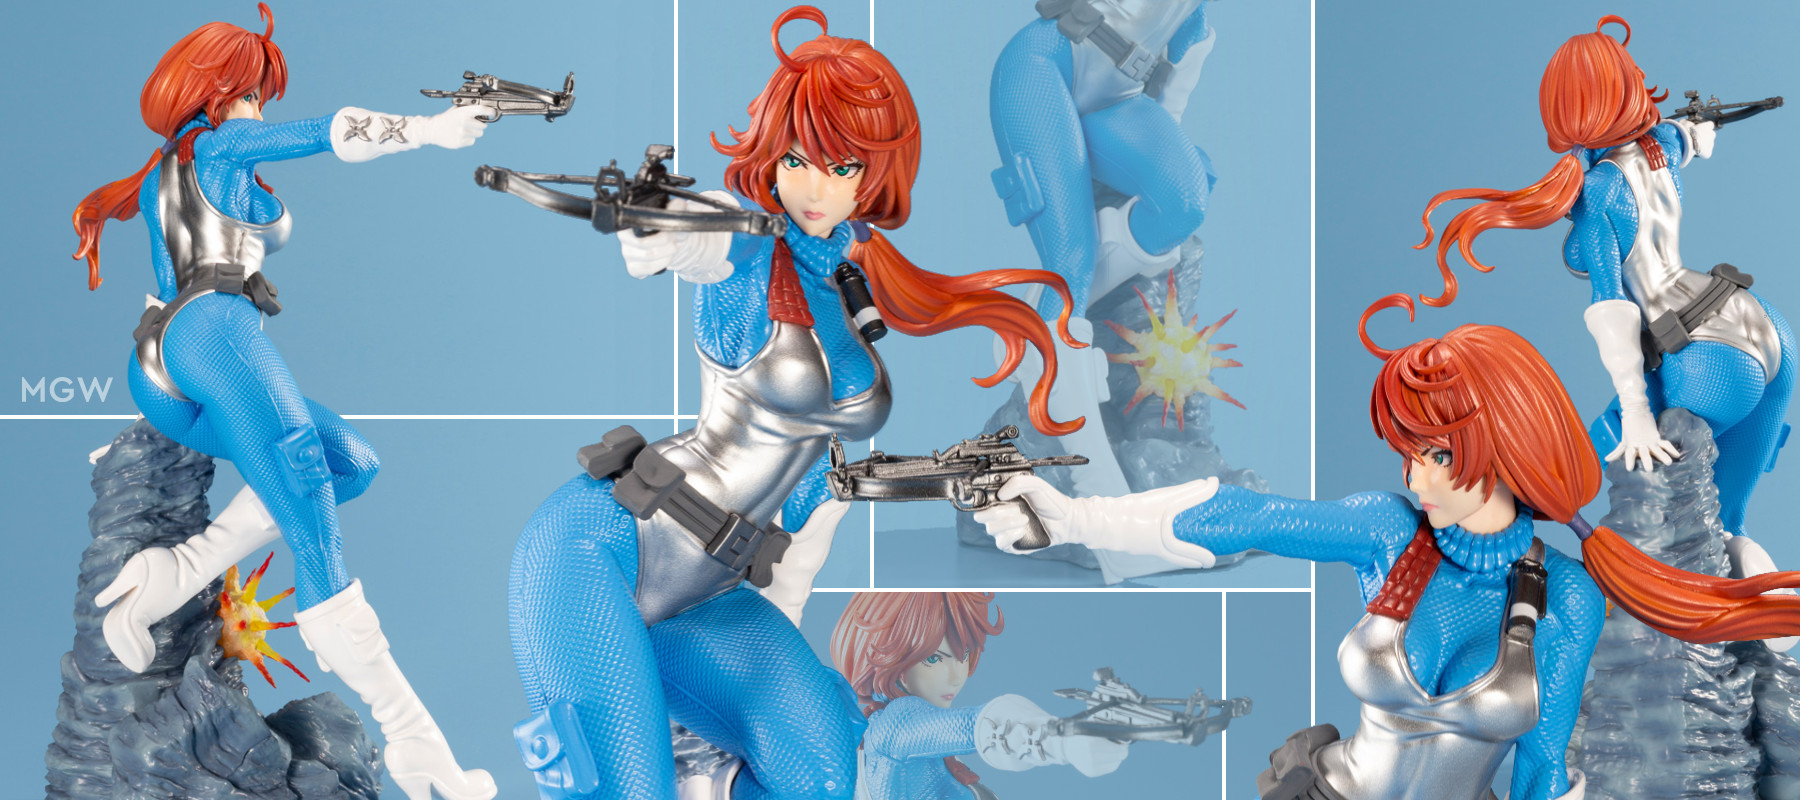 G.I. JOE Bishoujo Scarlett Sky Blue Limited Edition by Kotobukiya